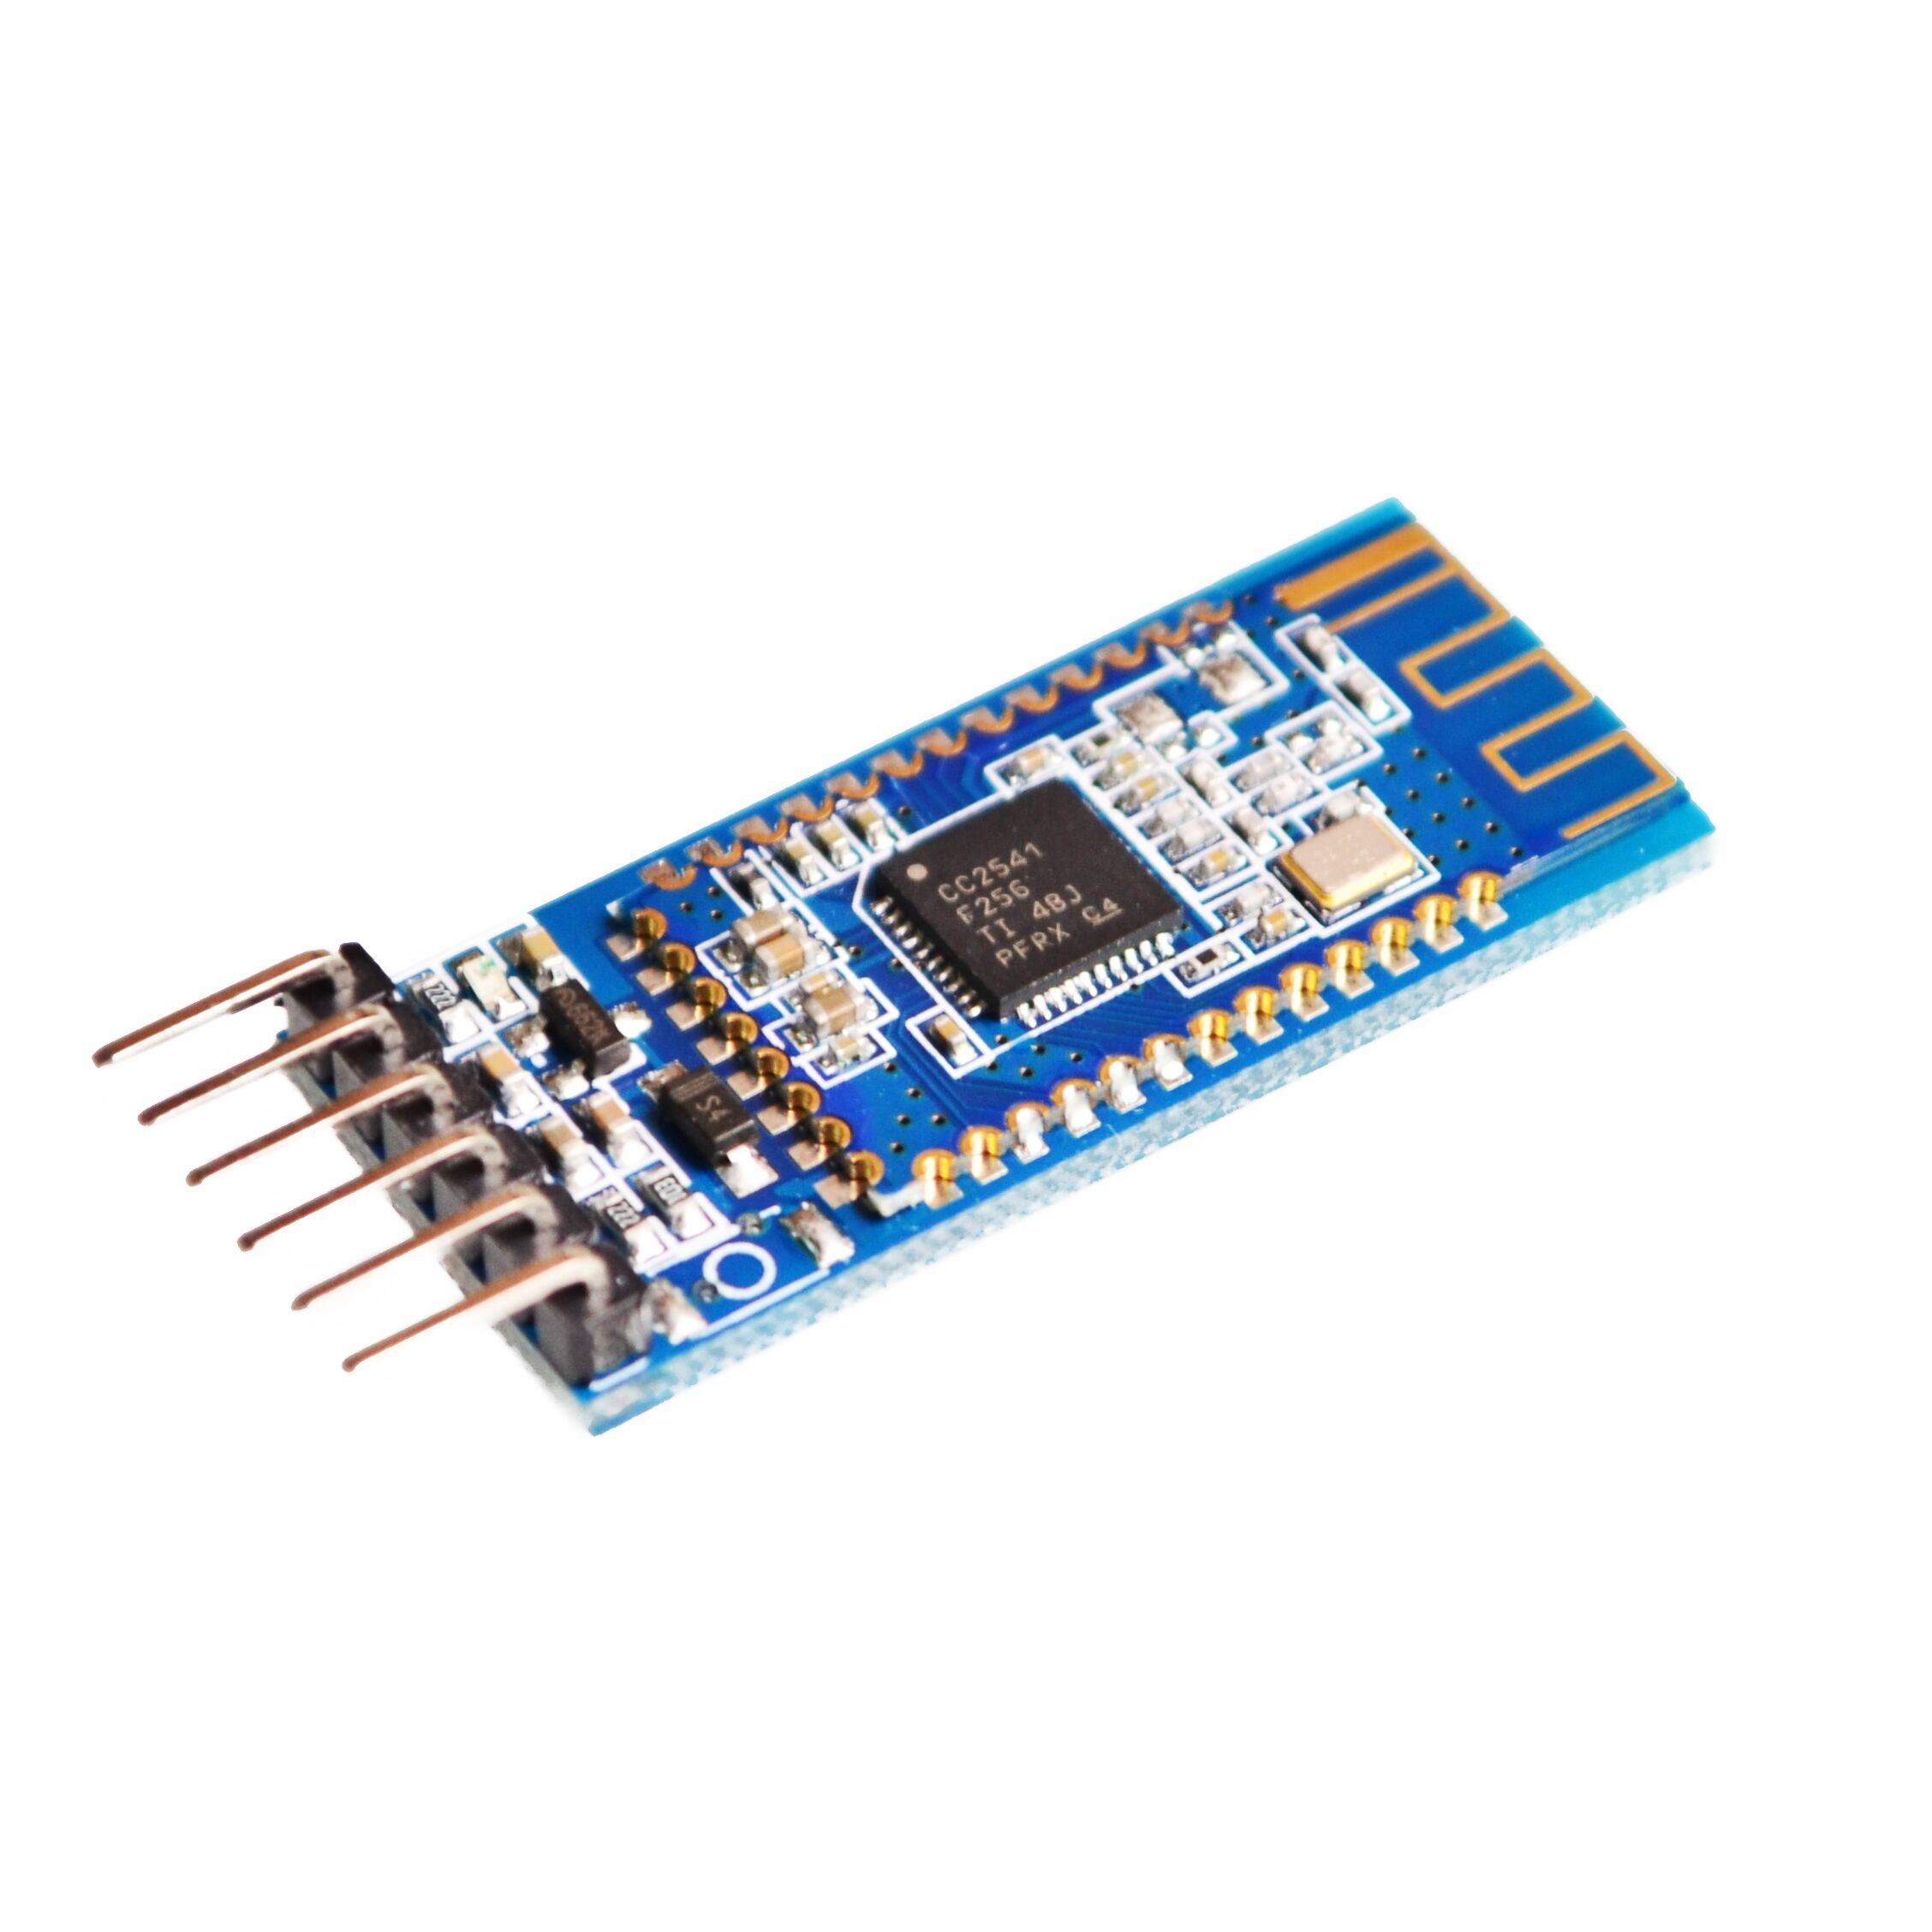 2Pcs BLE Bluetooth 4.0 CC2540 CC2541 Serial Wireless Module Compatible HM-10/_ rr